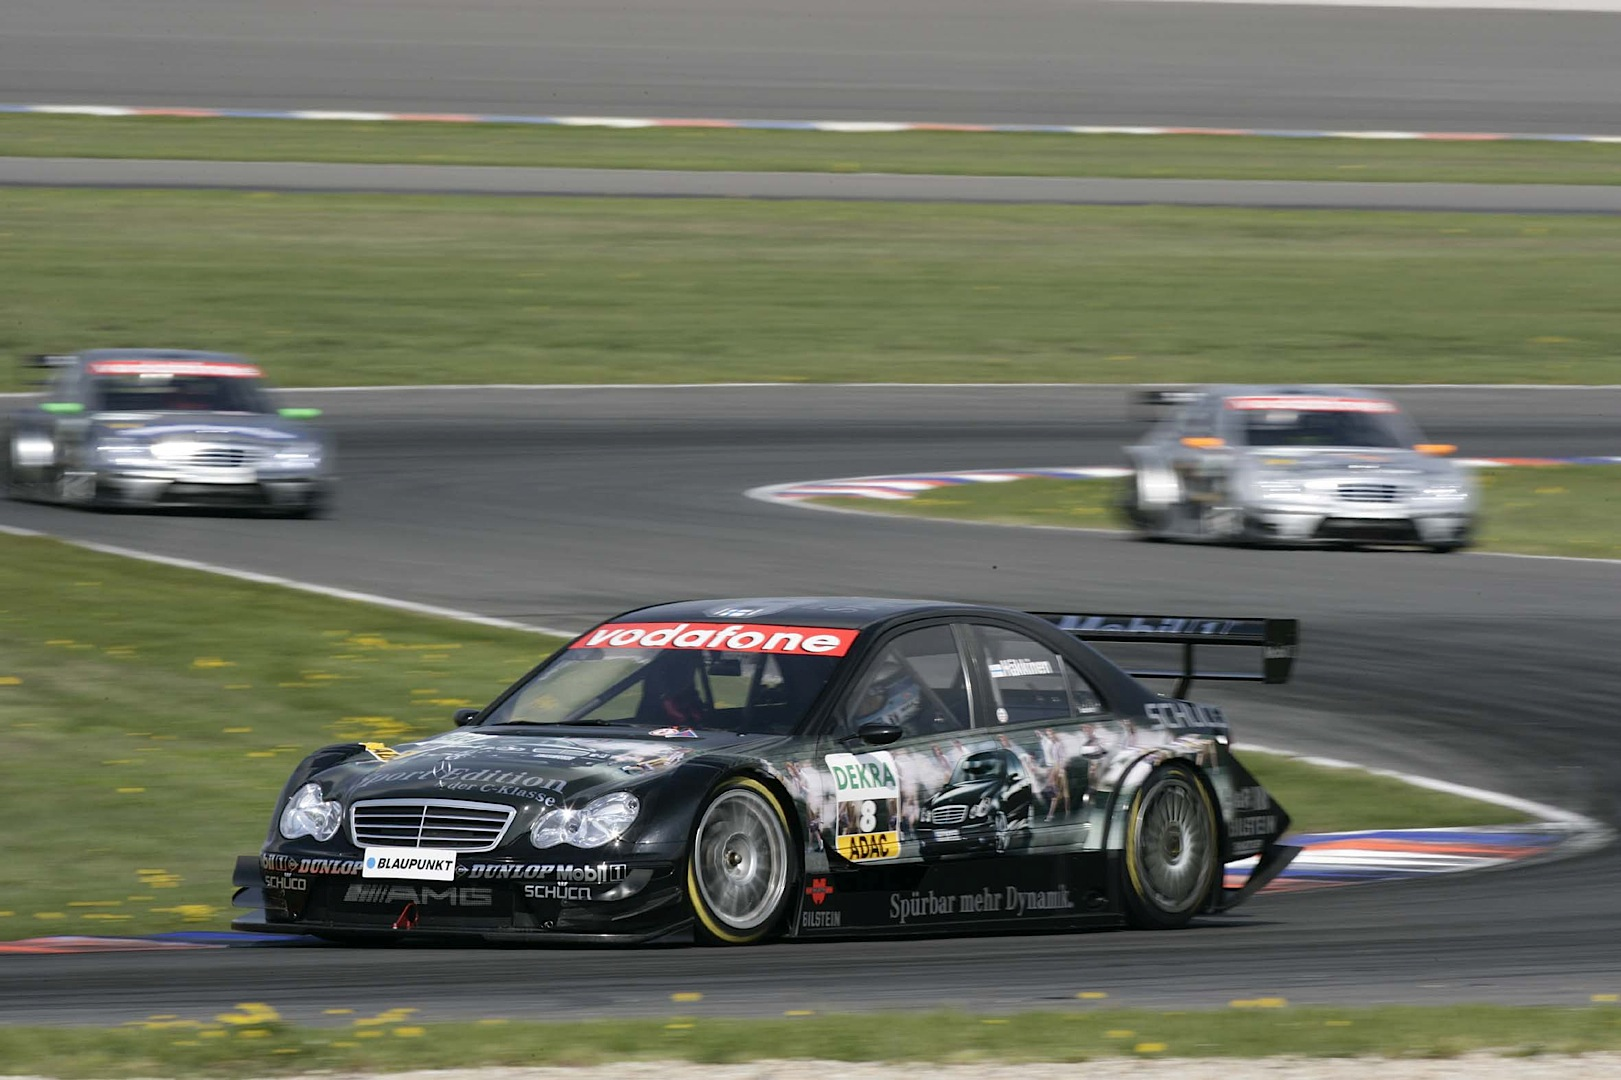 A short history of the mercedes benz c class in dtm for Mercedes benz motorsport